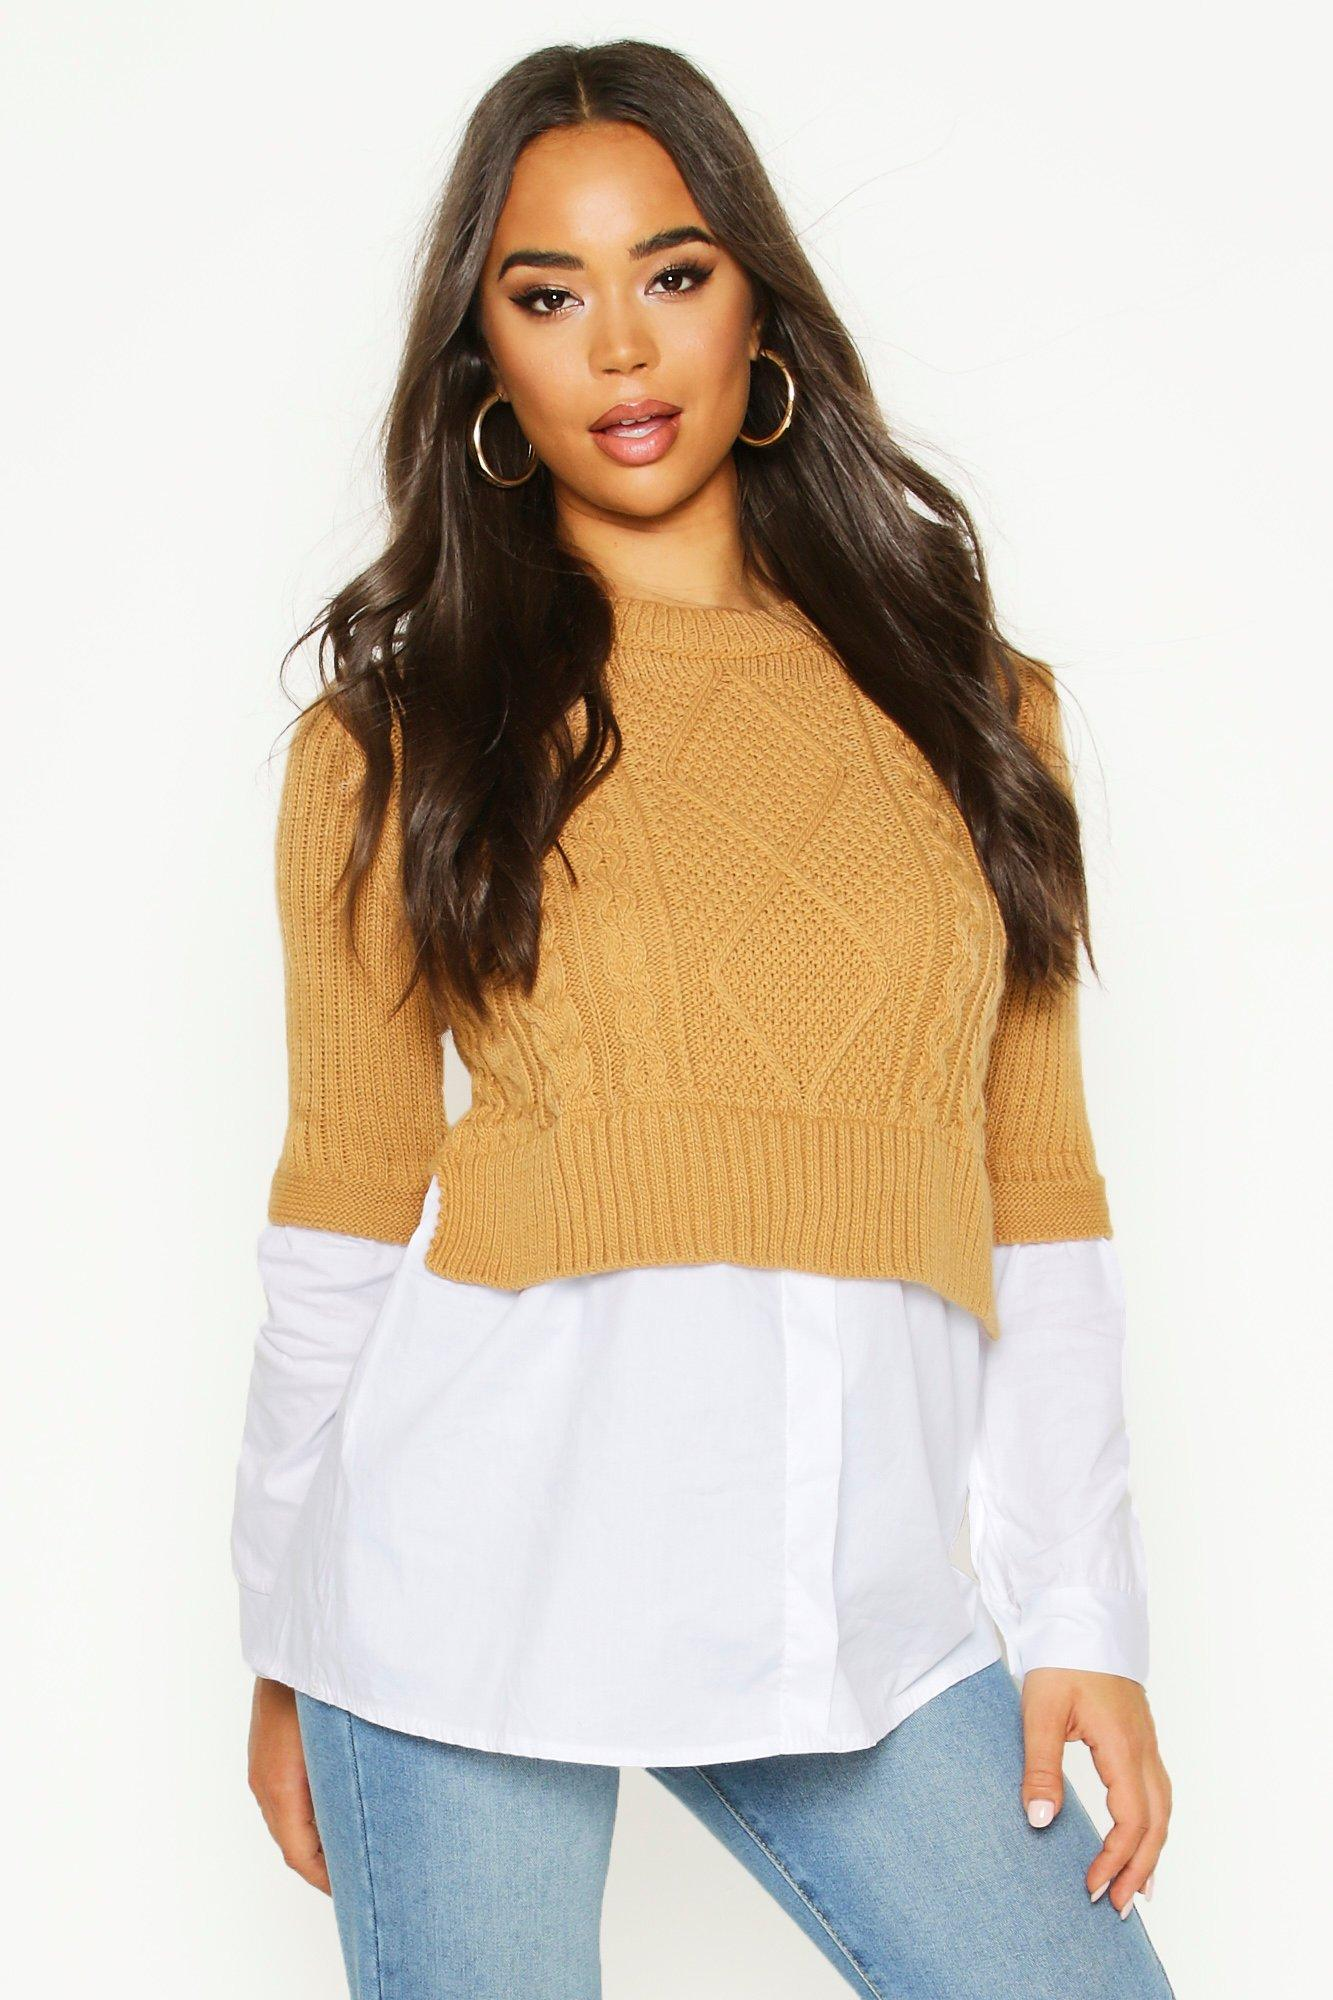 Womens Cable Knit 2 In 1 Top - stone - S/M, Stone - Boohoo.com